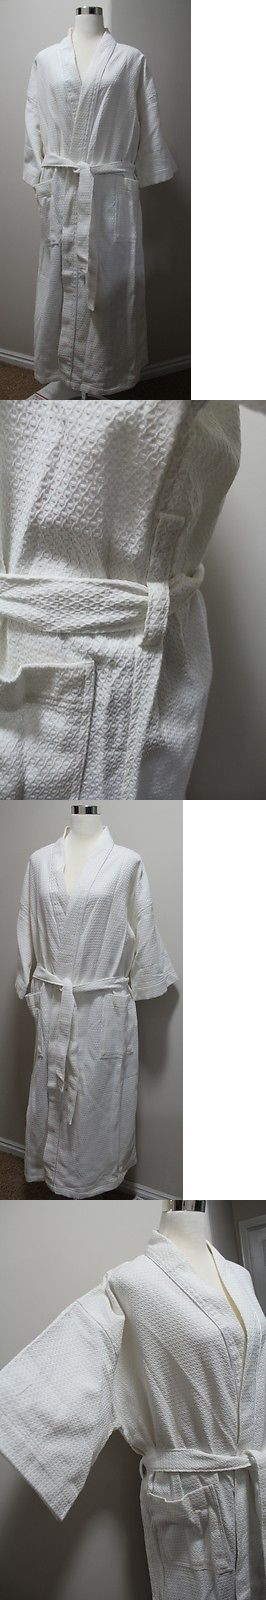 Sleepwear and Robes 166697: New Connoisseur Waffle Weave Bath Robe ...